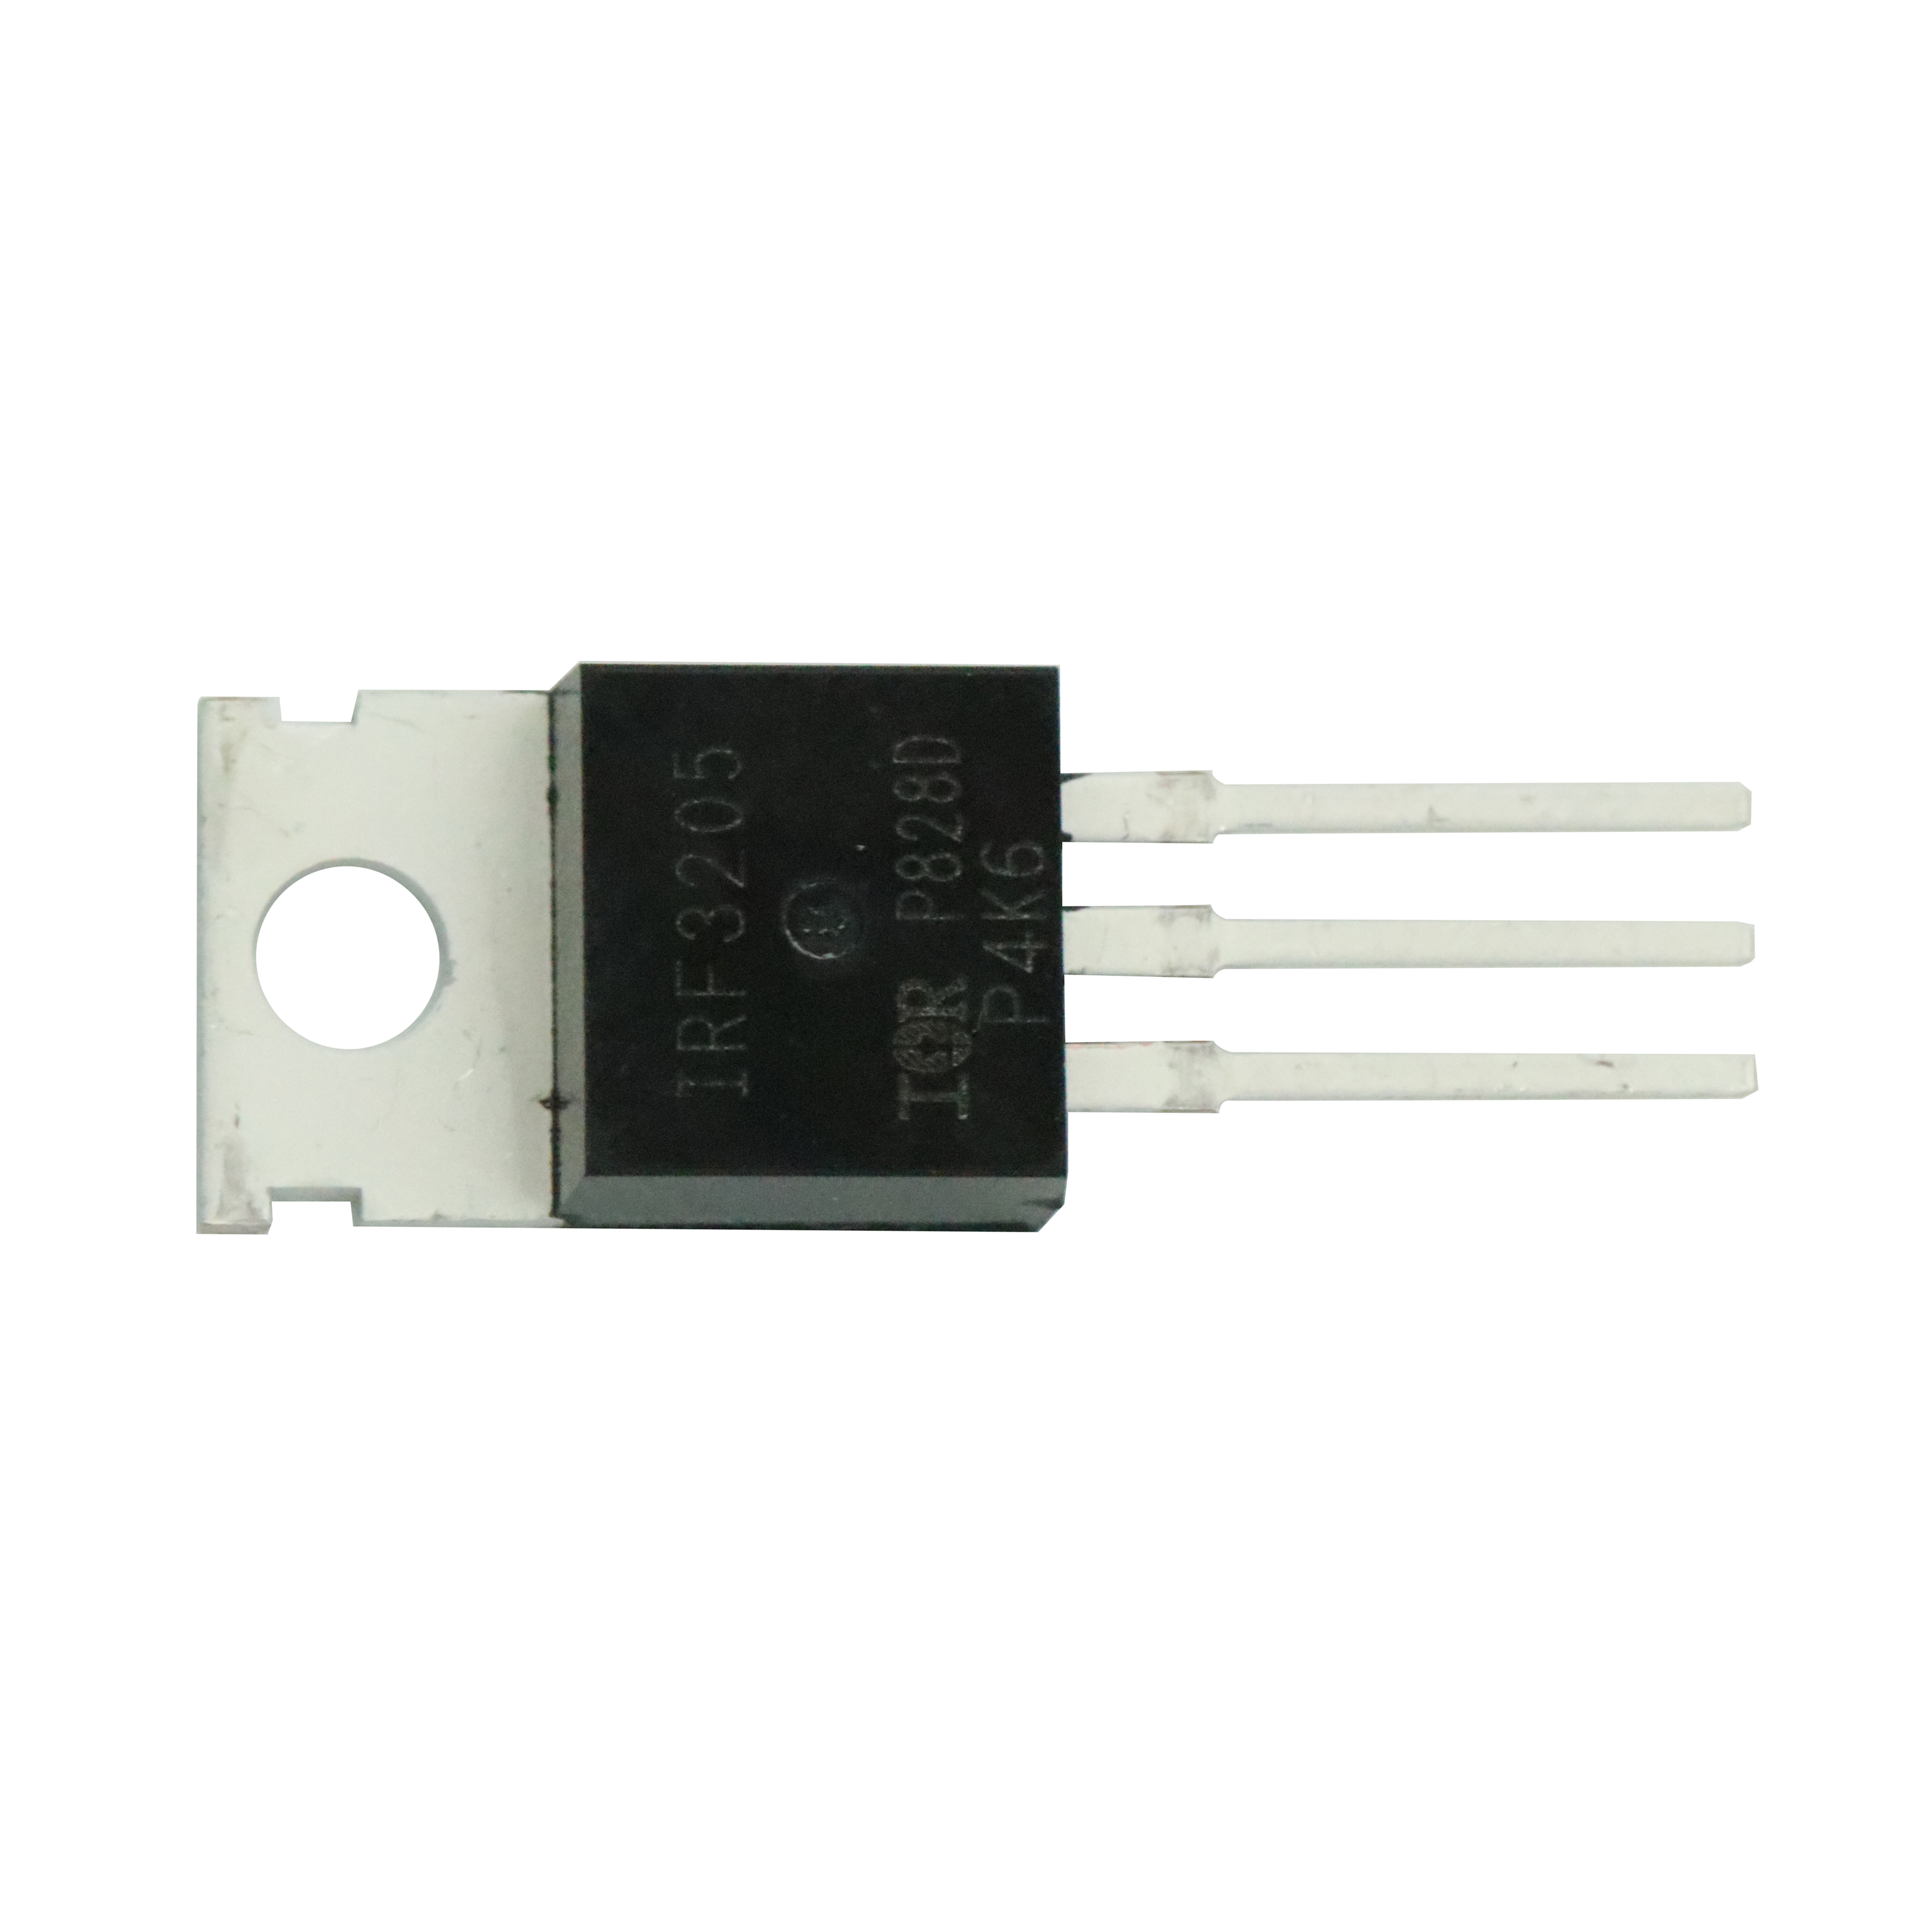 20pcs 55V 110A IRF3205 TO-220 IRF 3205 Power MOSFET